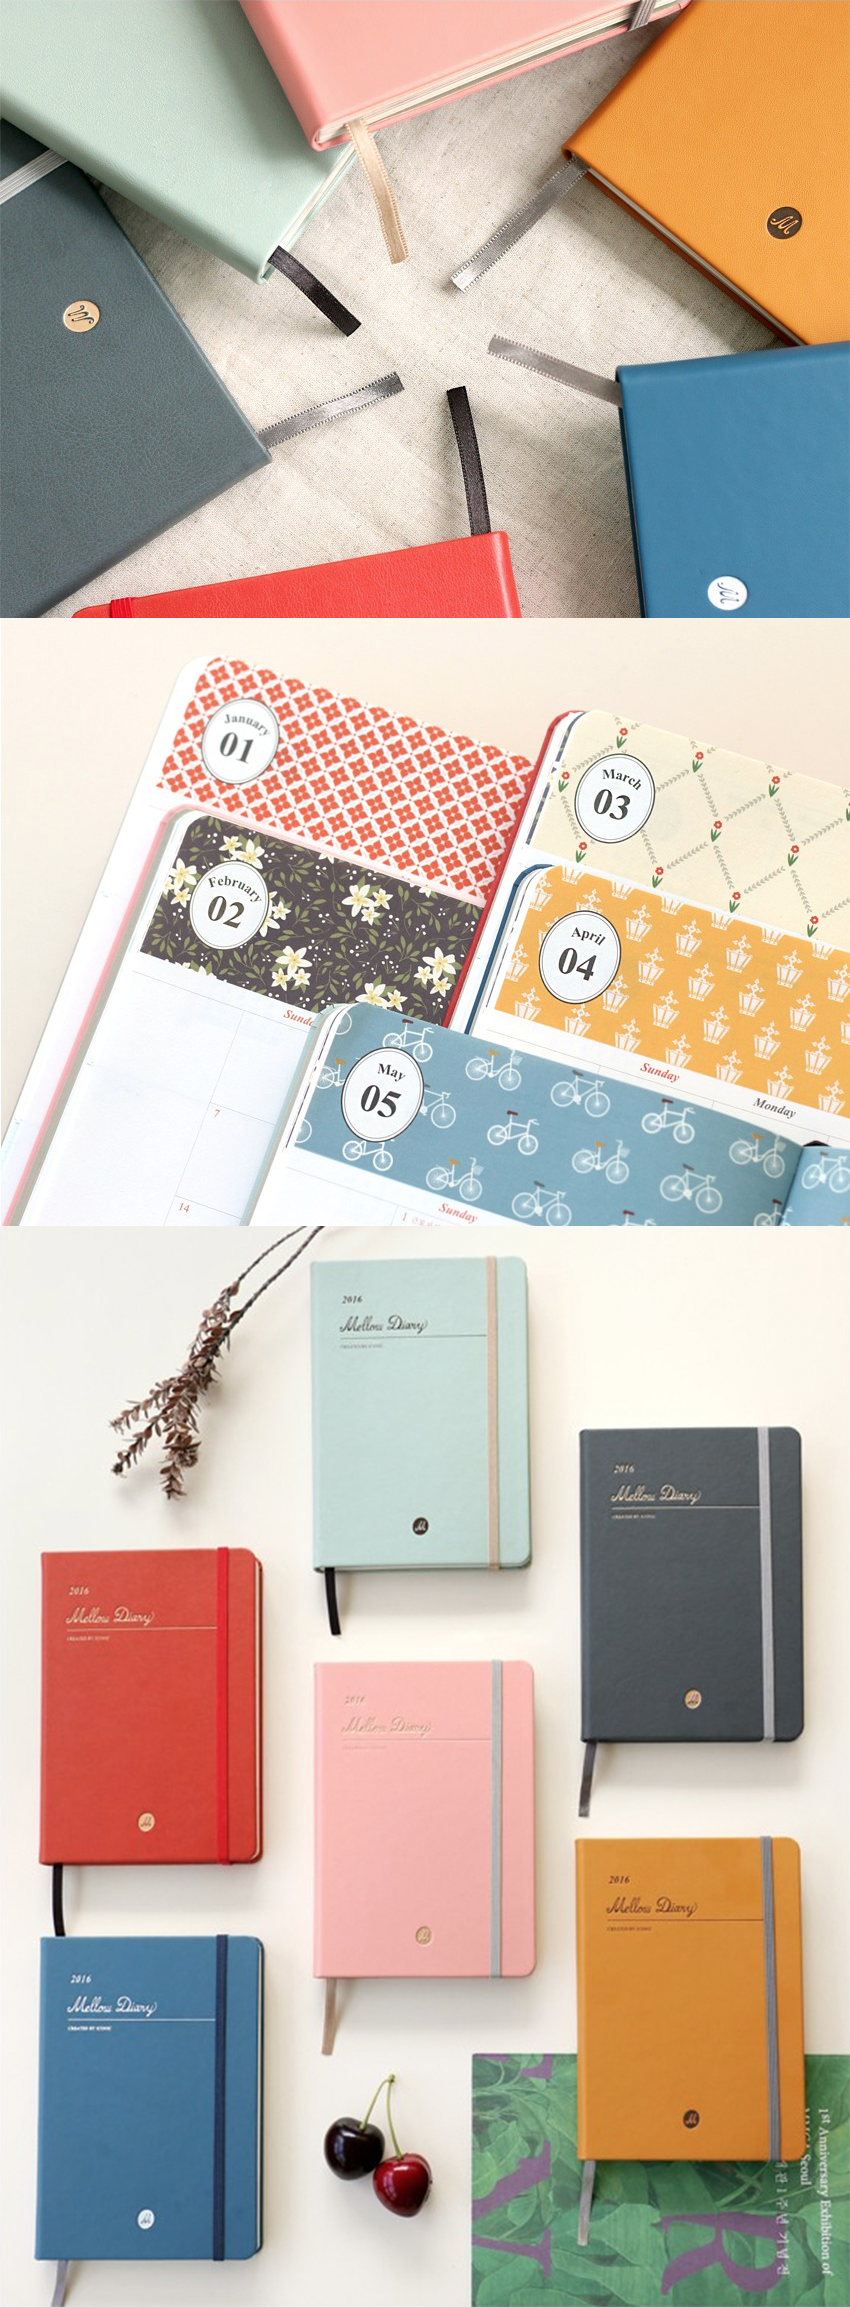 This elegant planner comes in a variety of beautiful colors. Each planner also comes with a sheet of deco stickers to make your planner unique and just the way you like it!